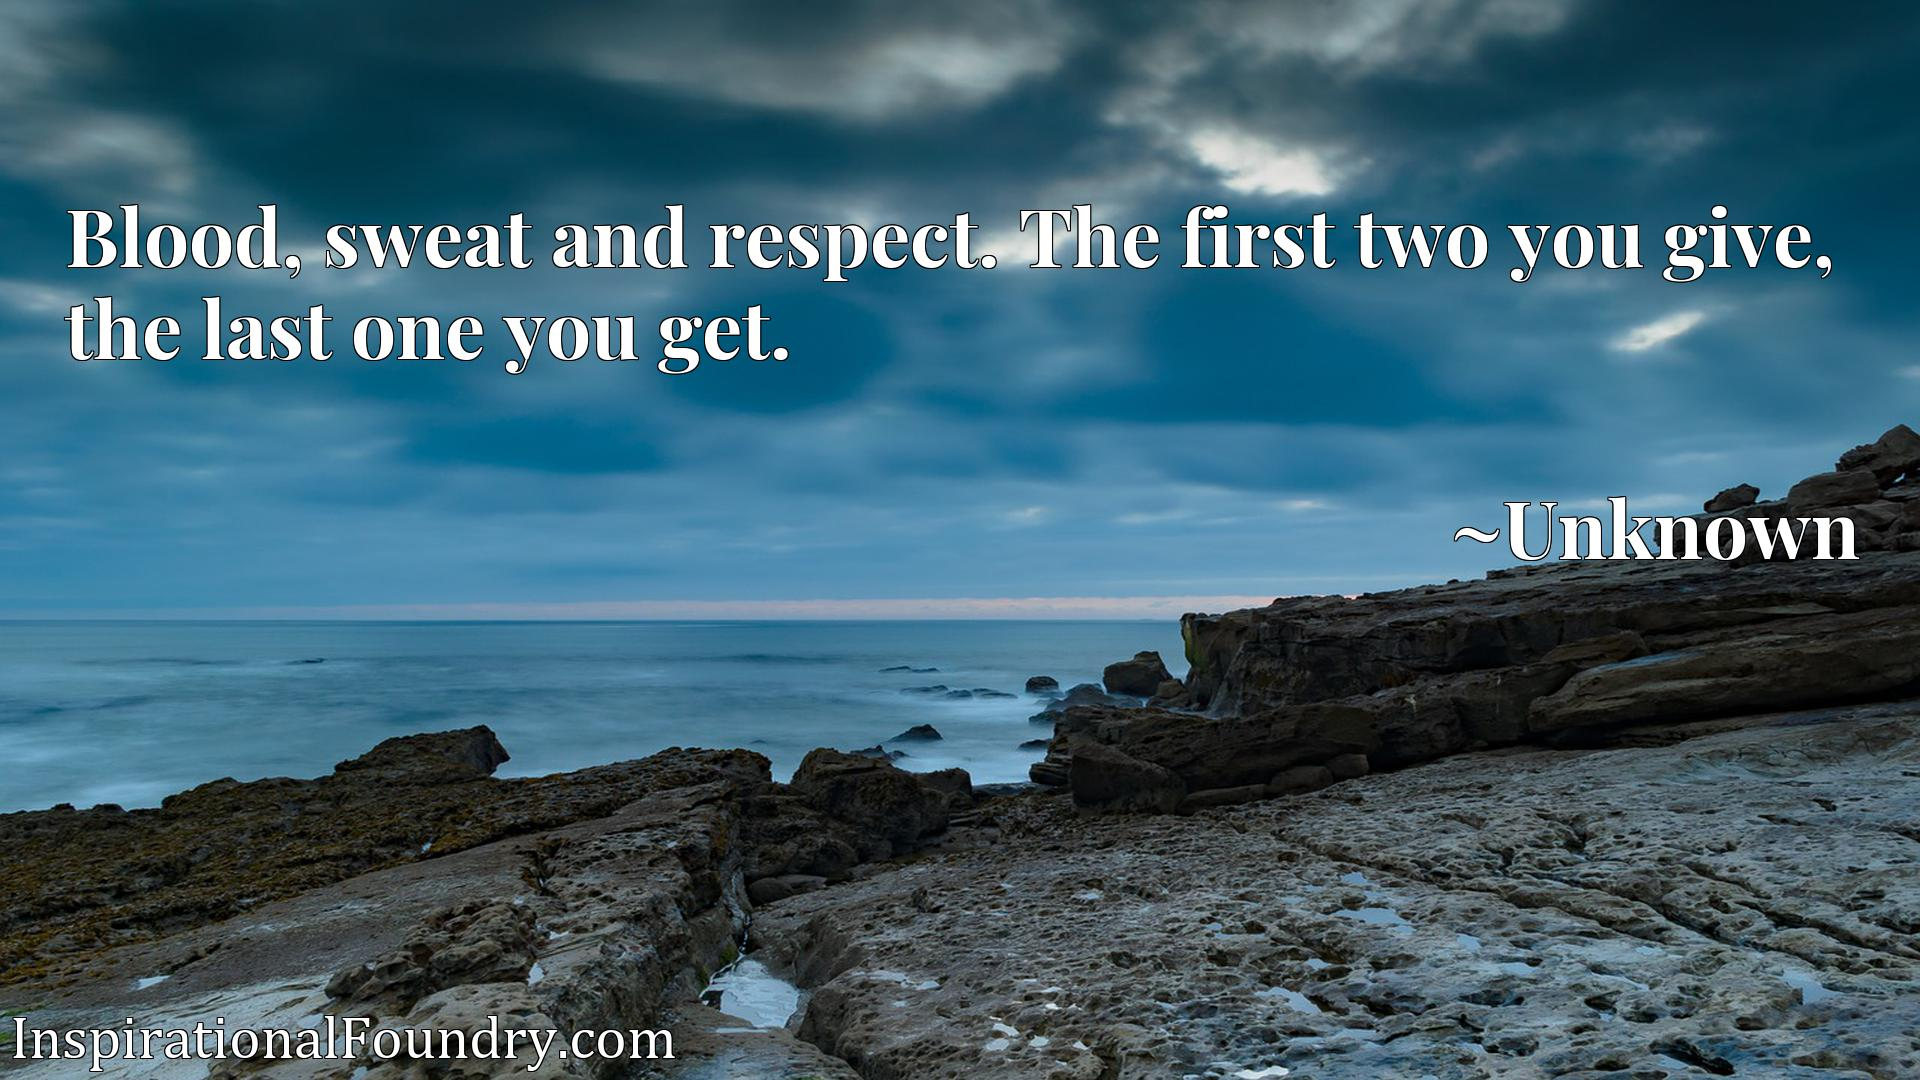 Blood, sweat and respect. The first two you give, the last one you get.